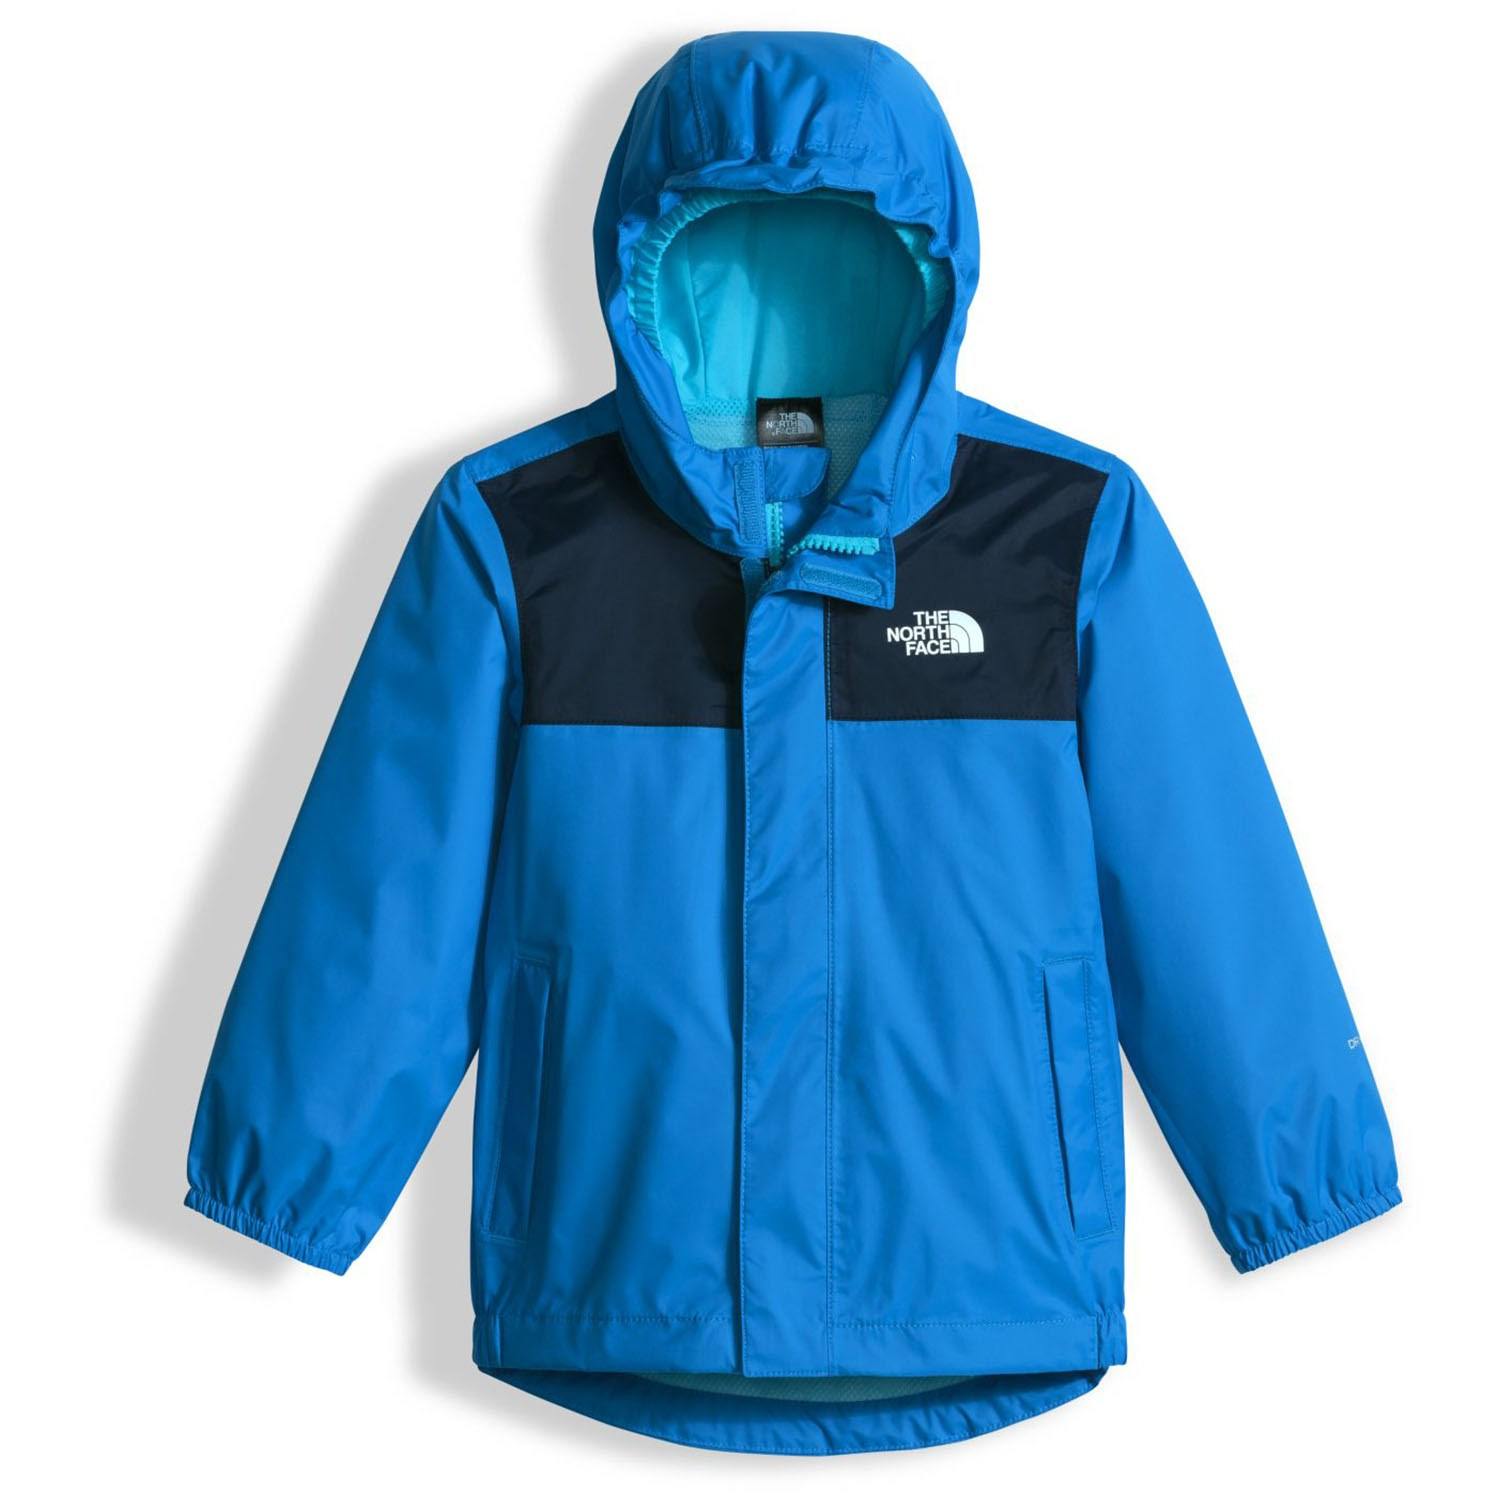 f292d5f0d The North Face Tailout Rain Jacket - Toddler Boys'